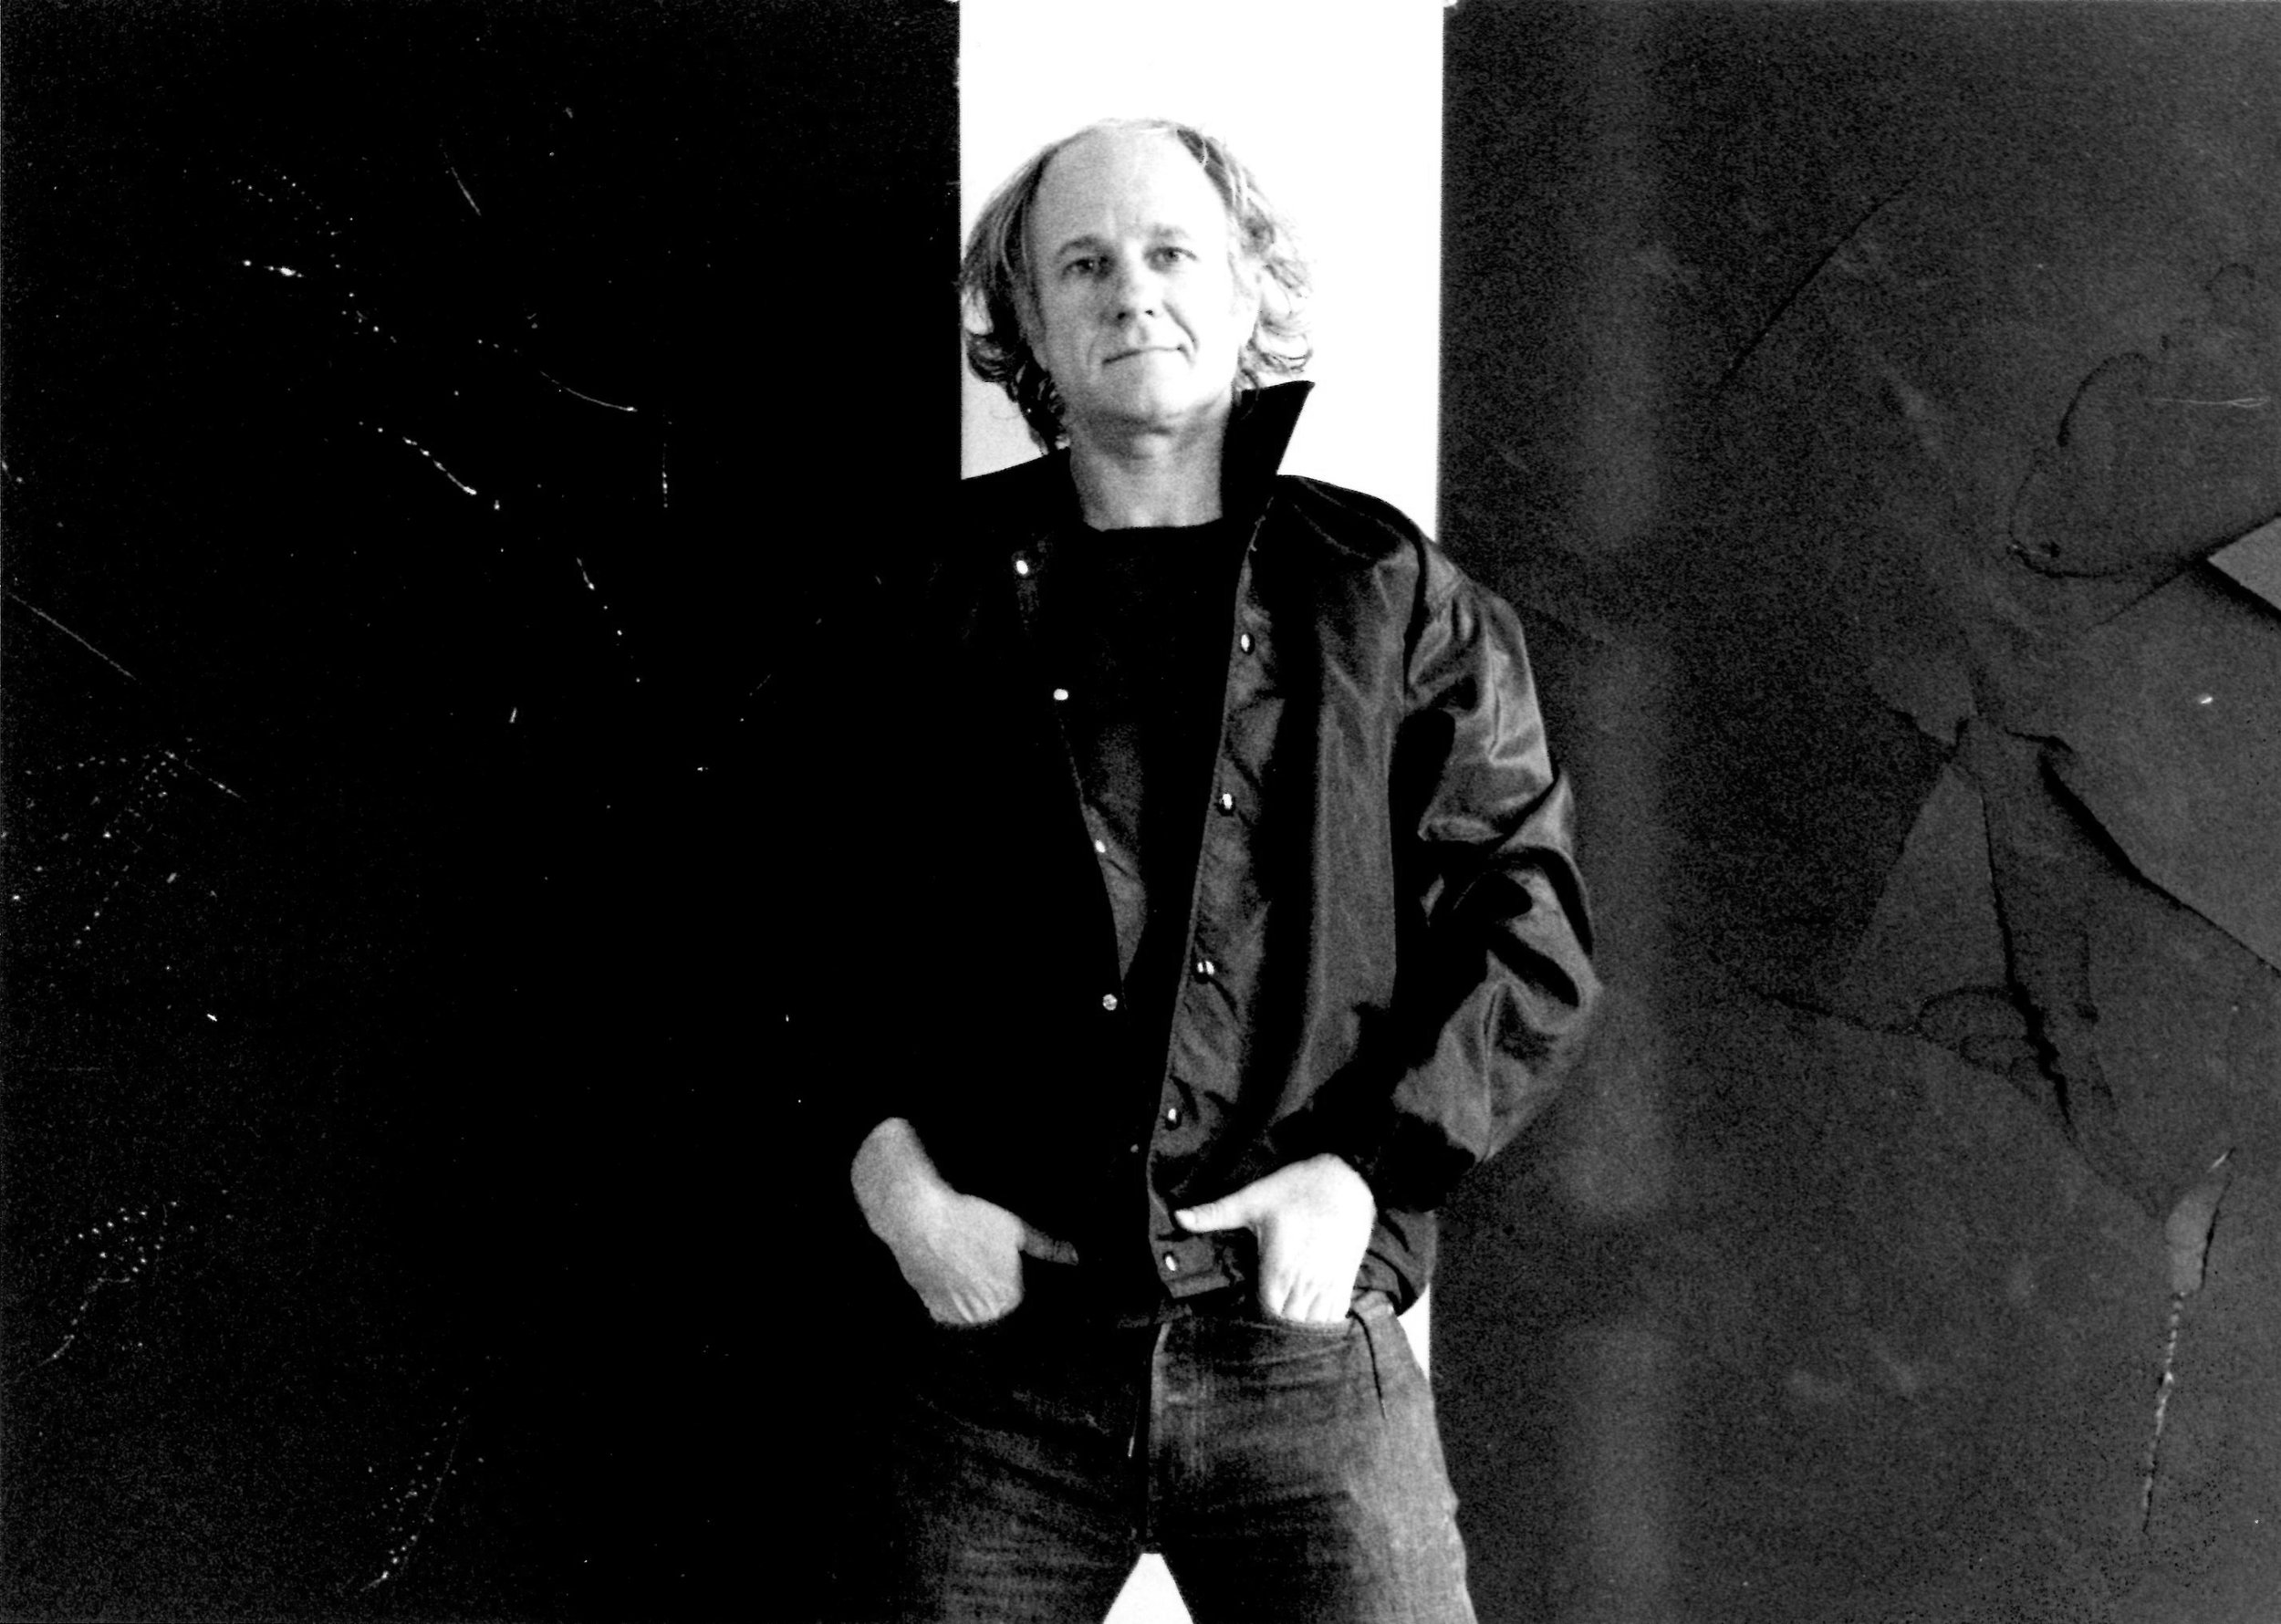 Joe Goode, photo by Steven Steinman     RELEVANT PRESS     Kohn Gallery: Joe Goode, Nighttime Series 1977-78       Michael Kohn Gallery Hosts Joe Goode's 'Nighttime 1977-78'       Art in America: Joe Goode